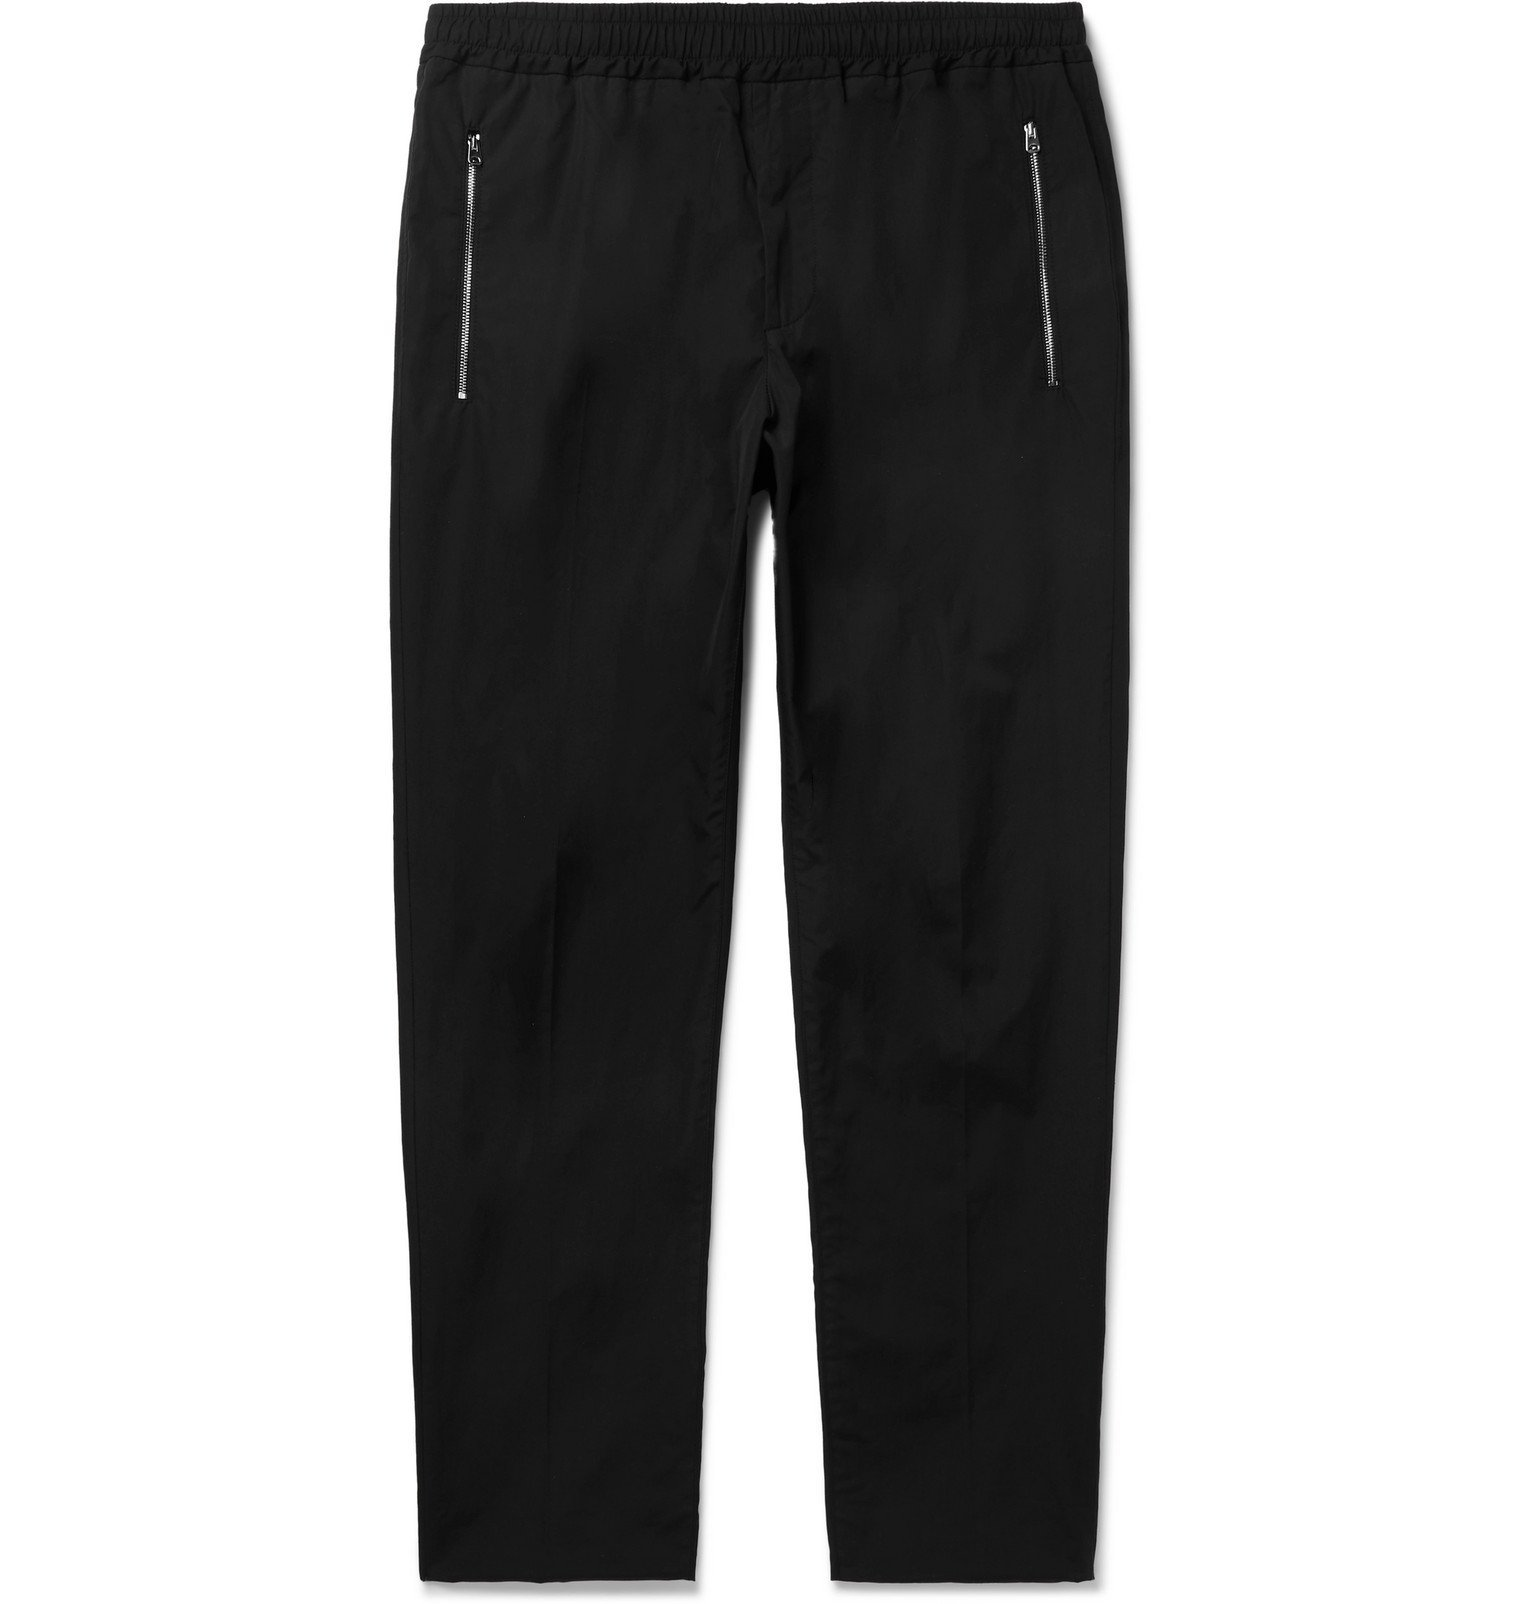 Stella McCartney - Slim-Fit Tapered Cotton Drawstring Trousers - Black